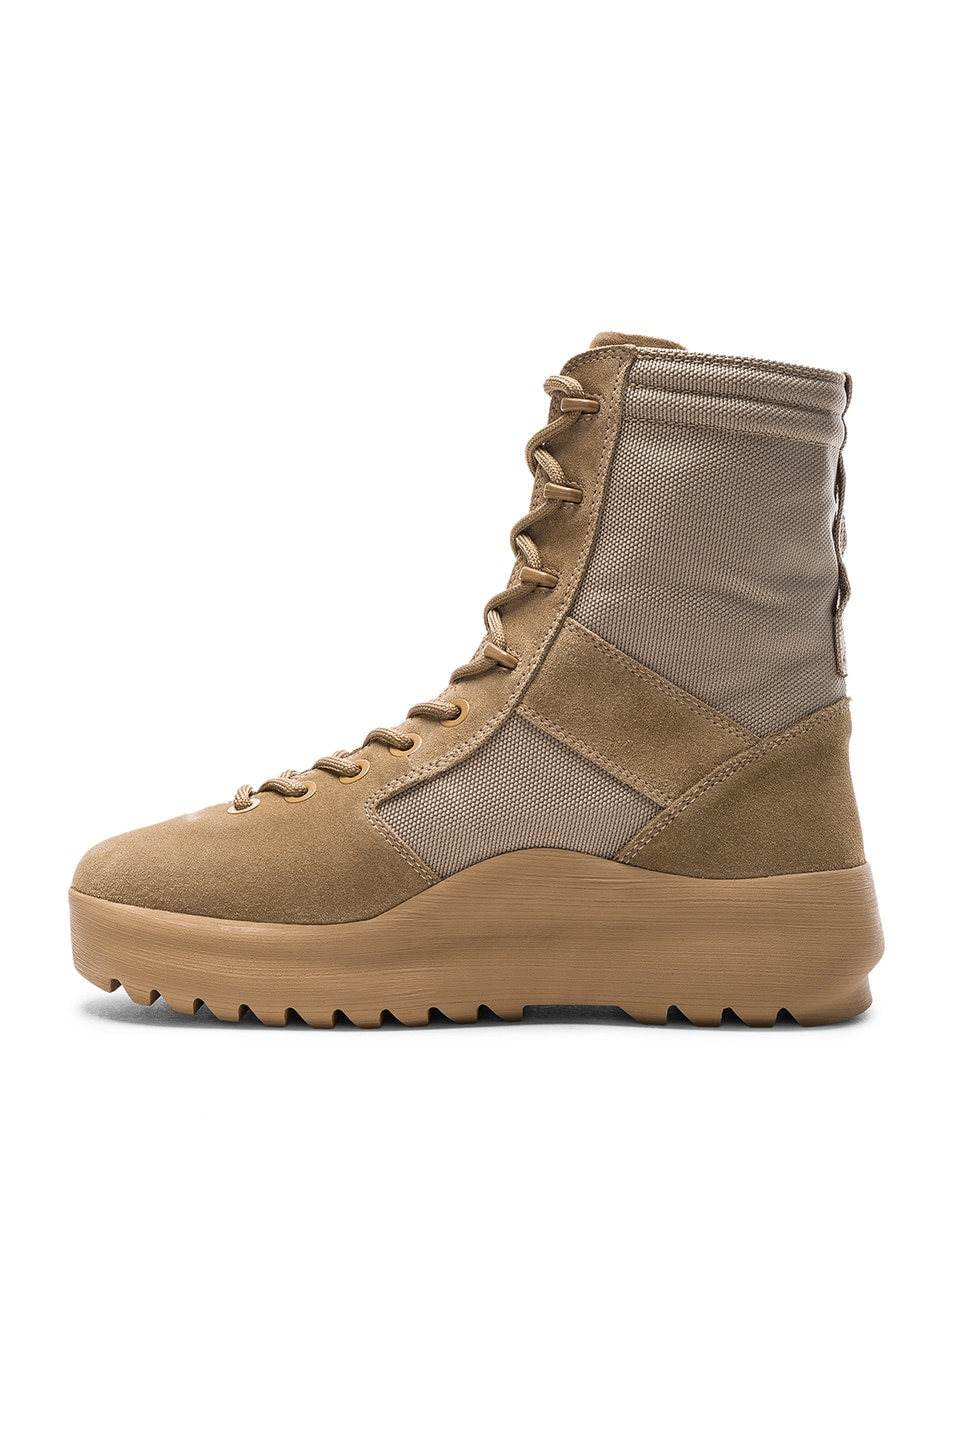 18cf653bdcc Image 5 of YEEZY Season 3 Military Boots in Rock